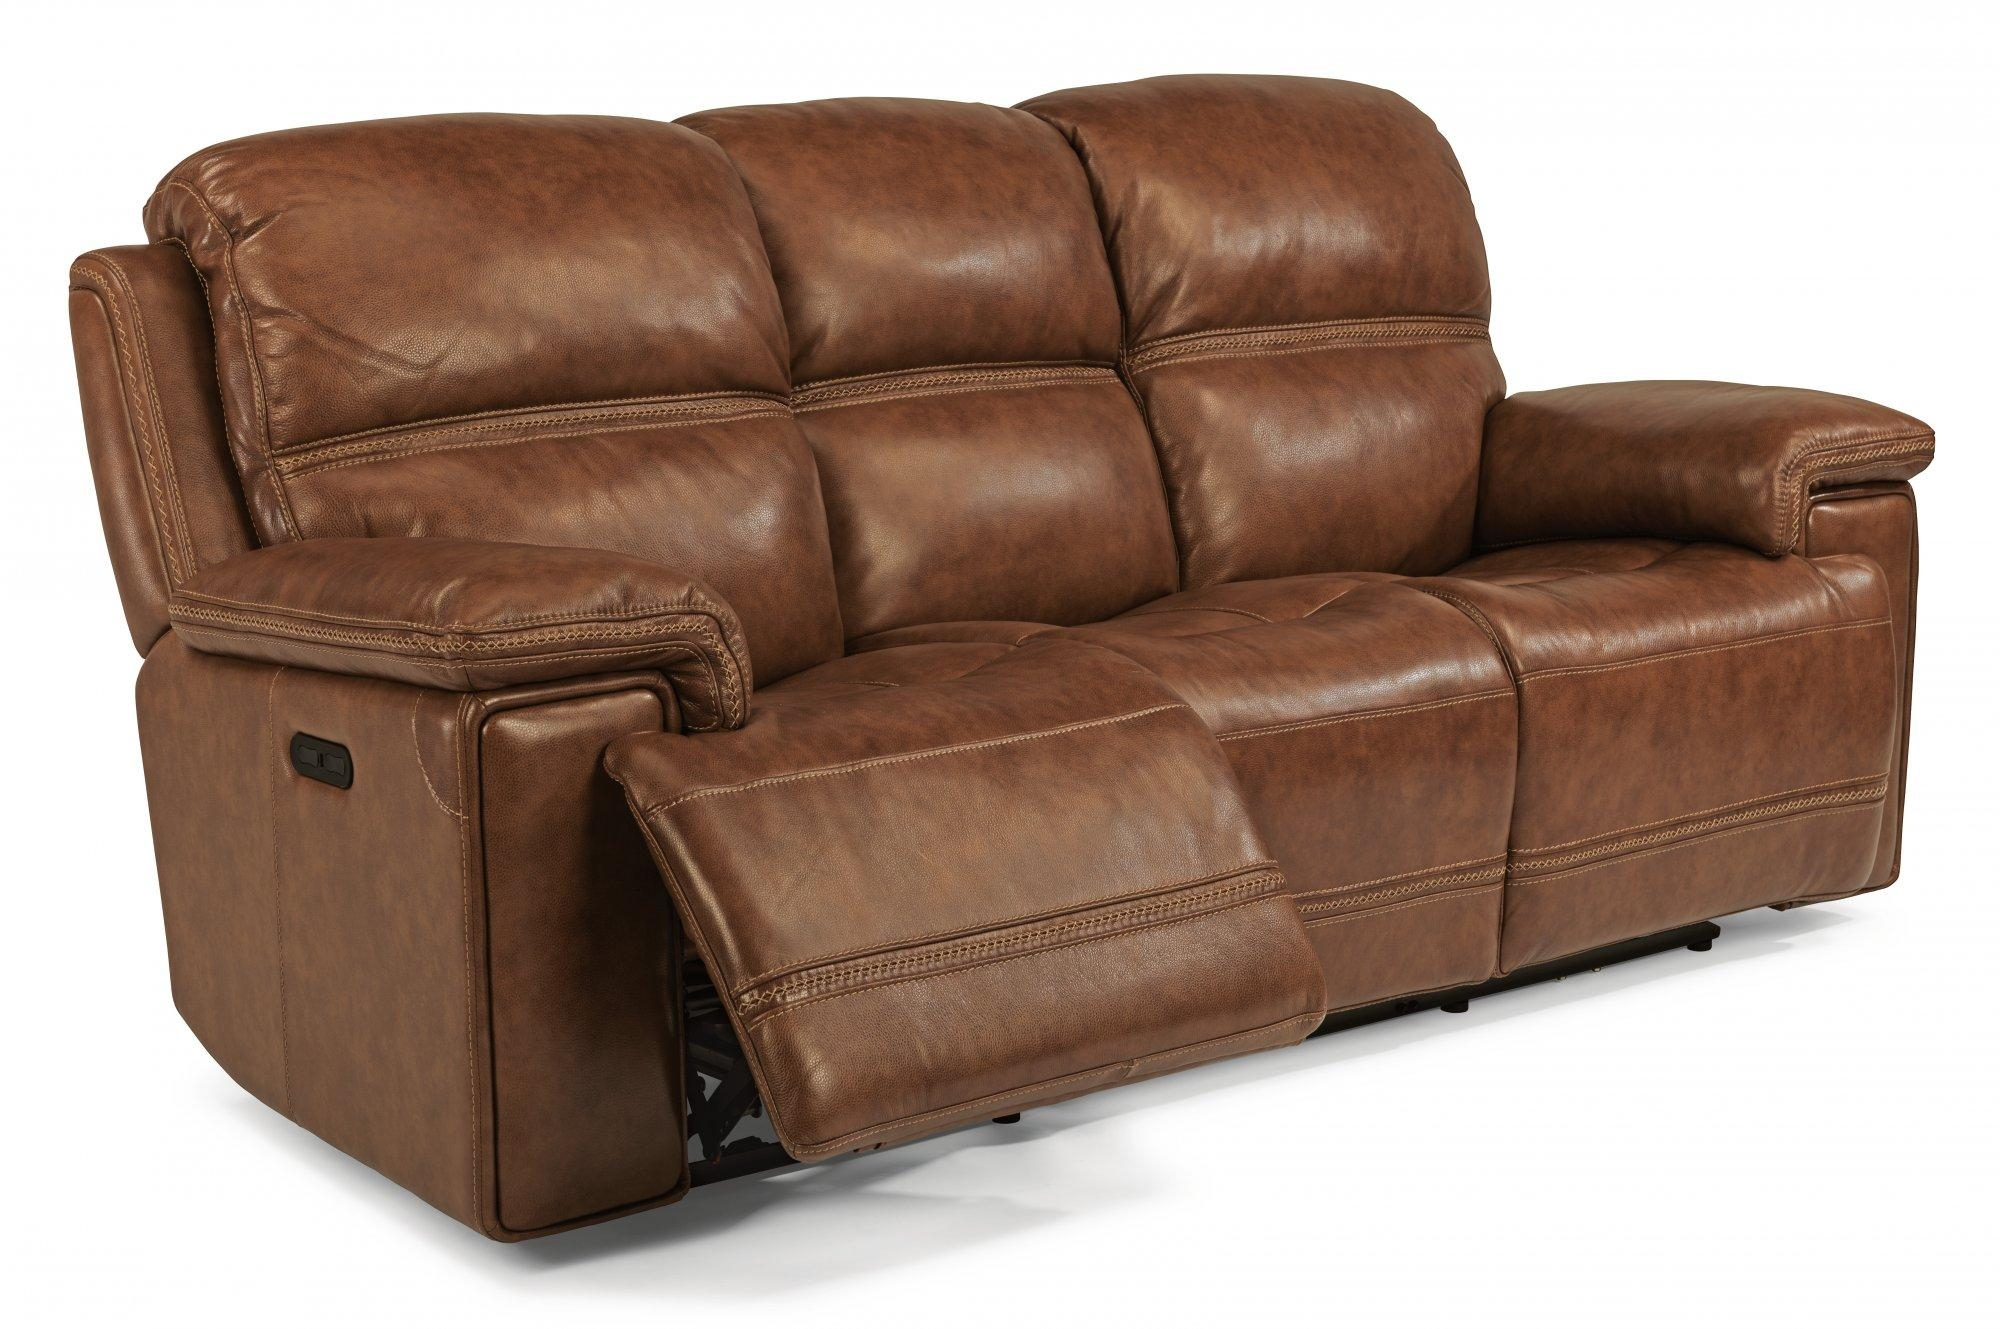 Chinaklsk In Rv Recliner Sofas (Image 1 of 20)